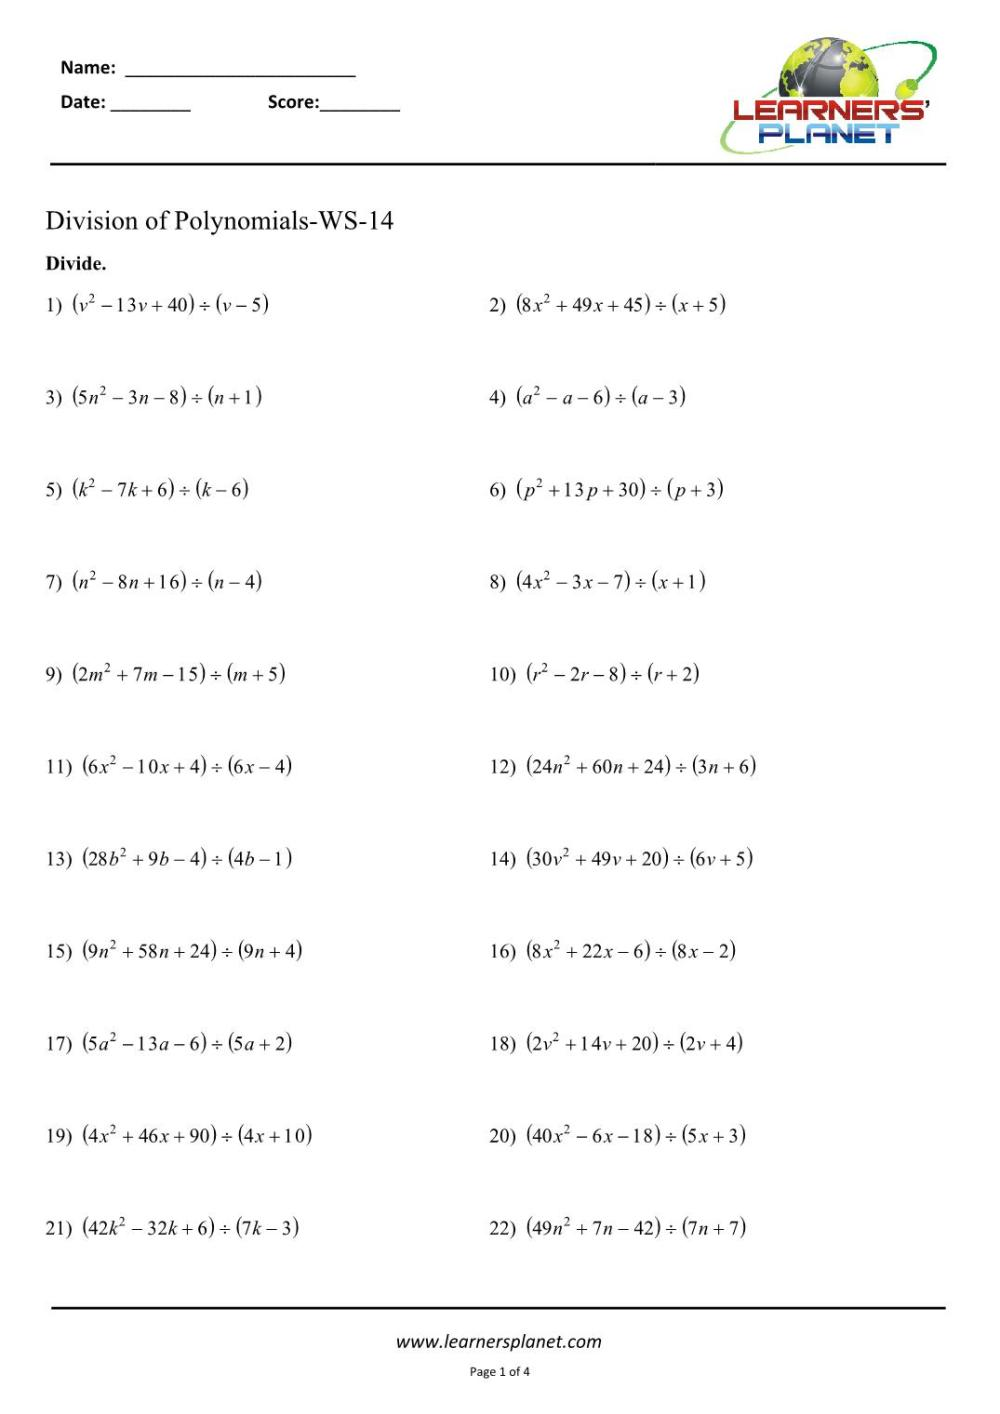 medium resolution of Division of polynomials class 8 worksheets